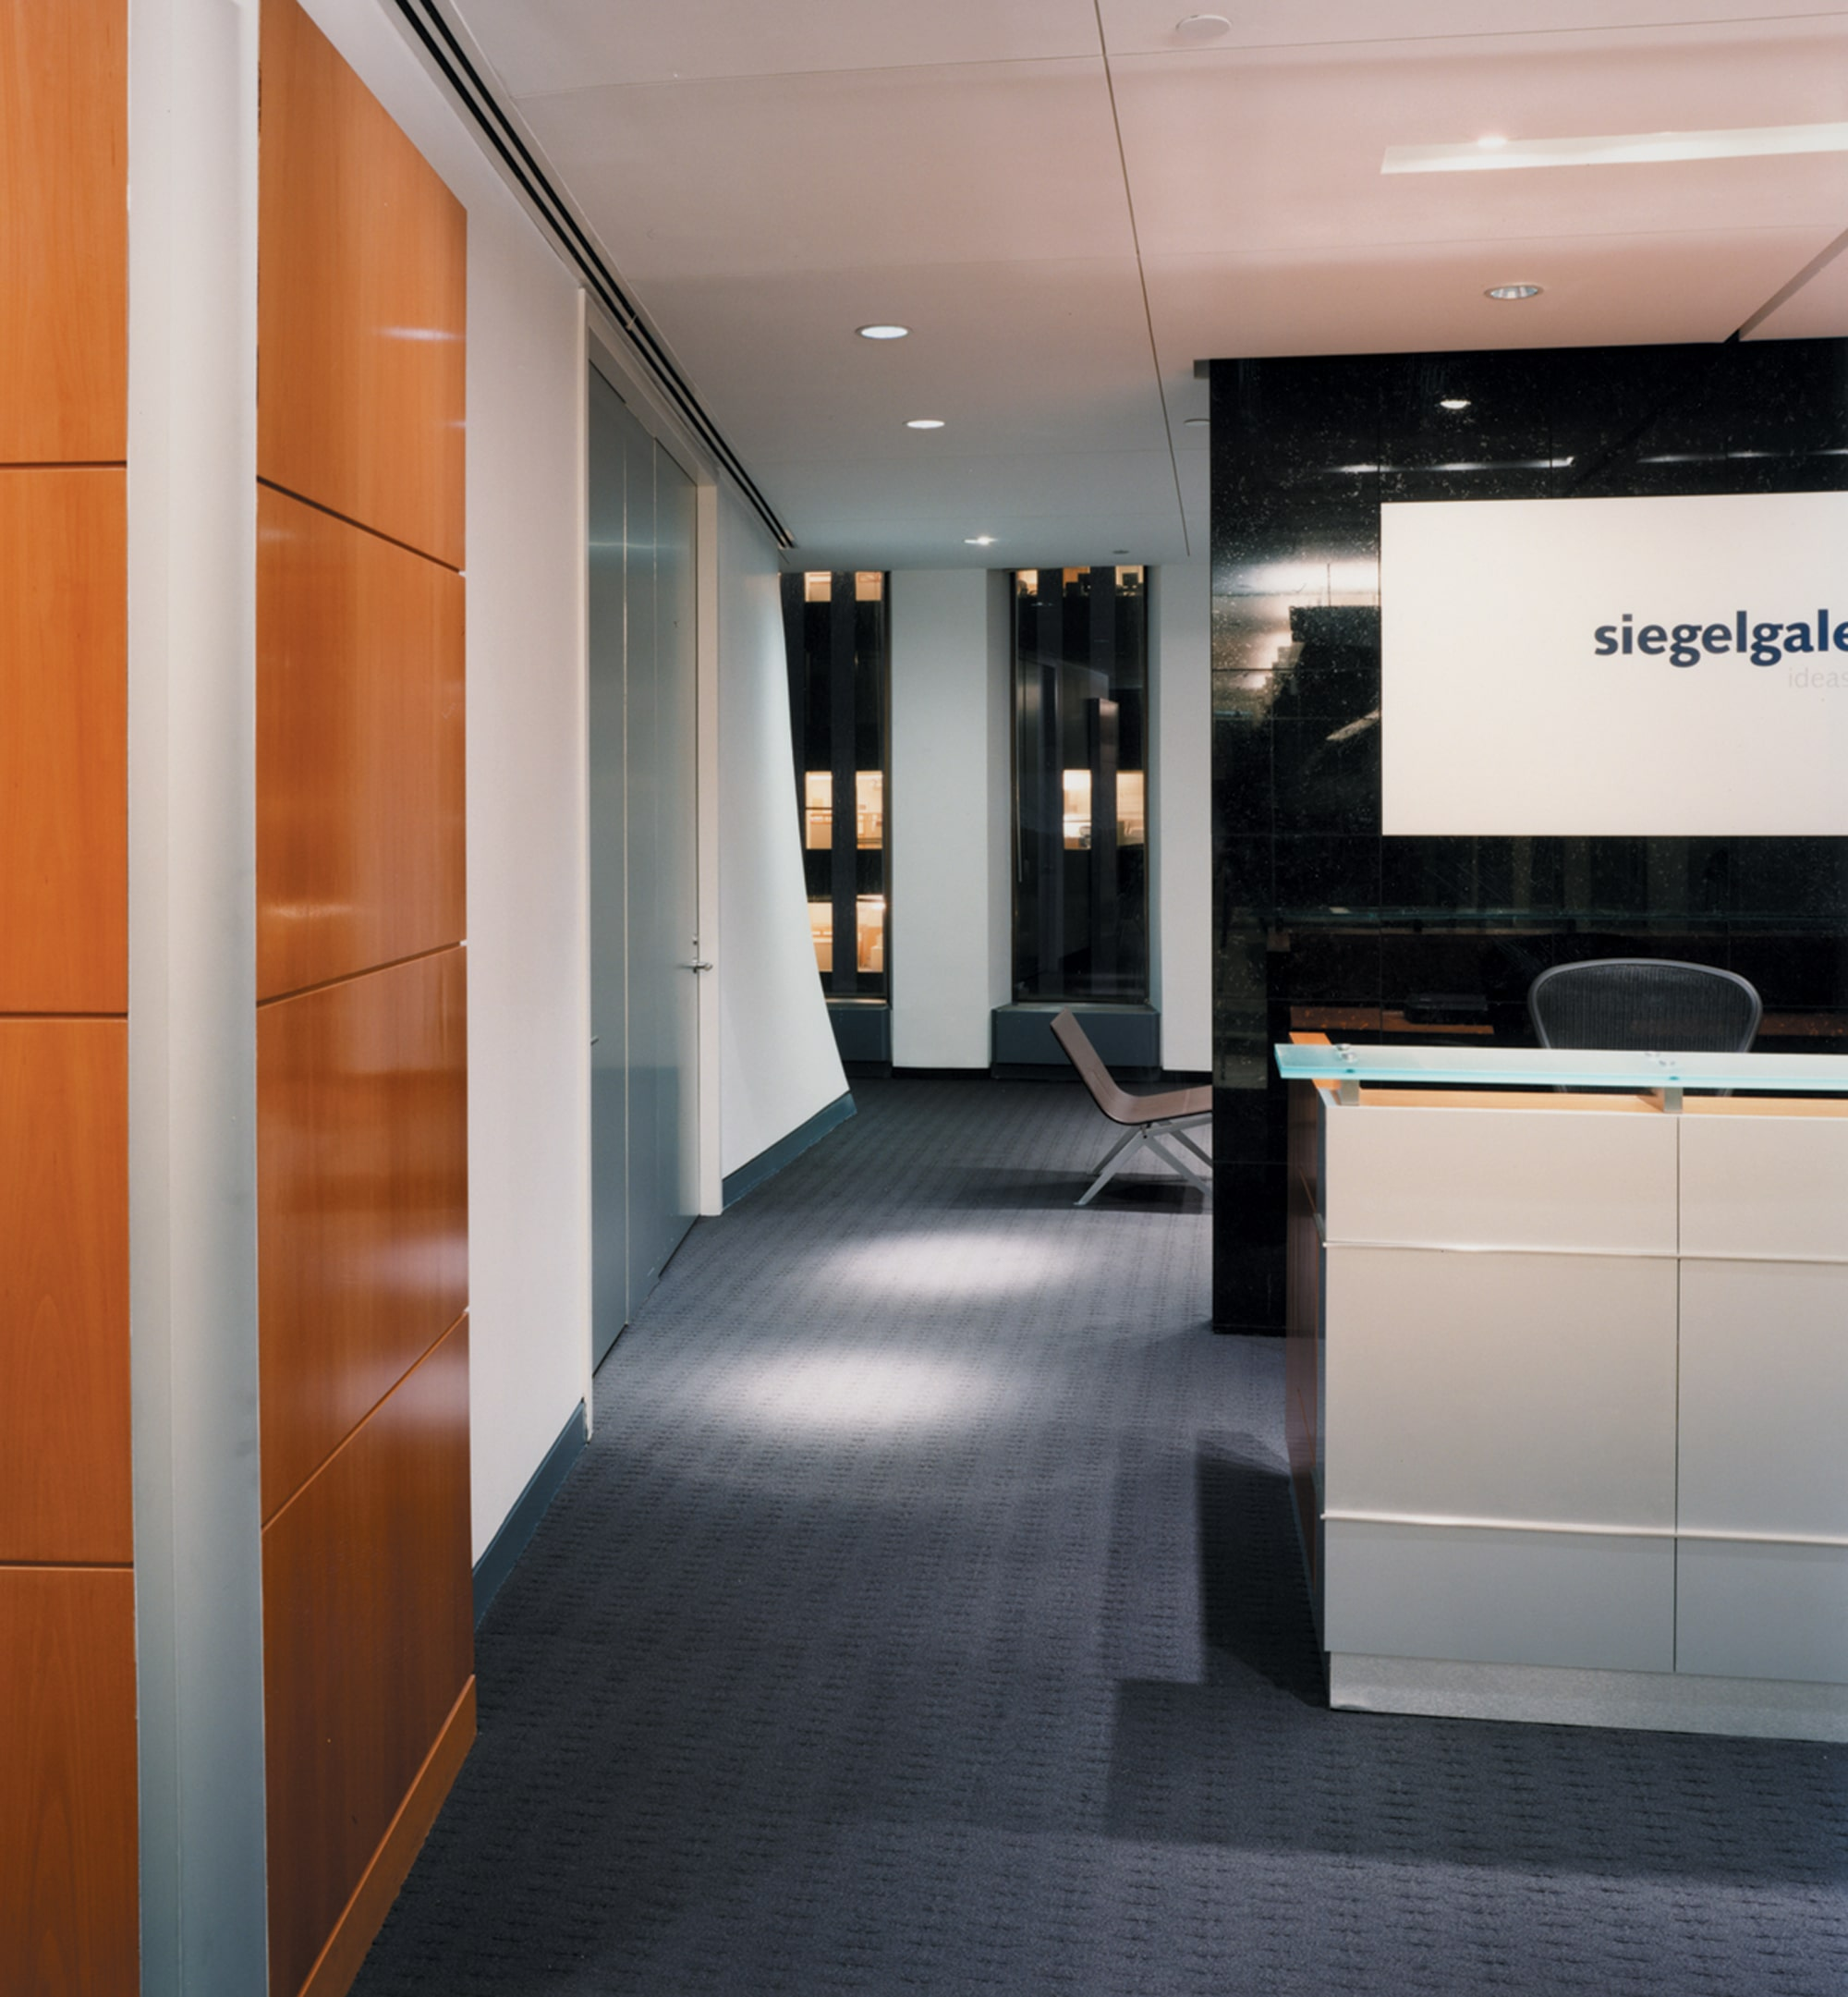 RES4 | Siegelgale Corp